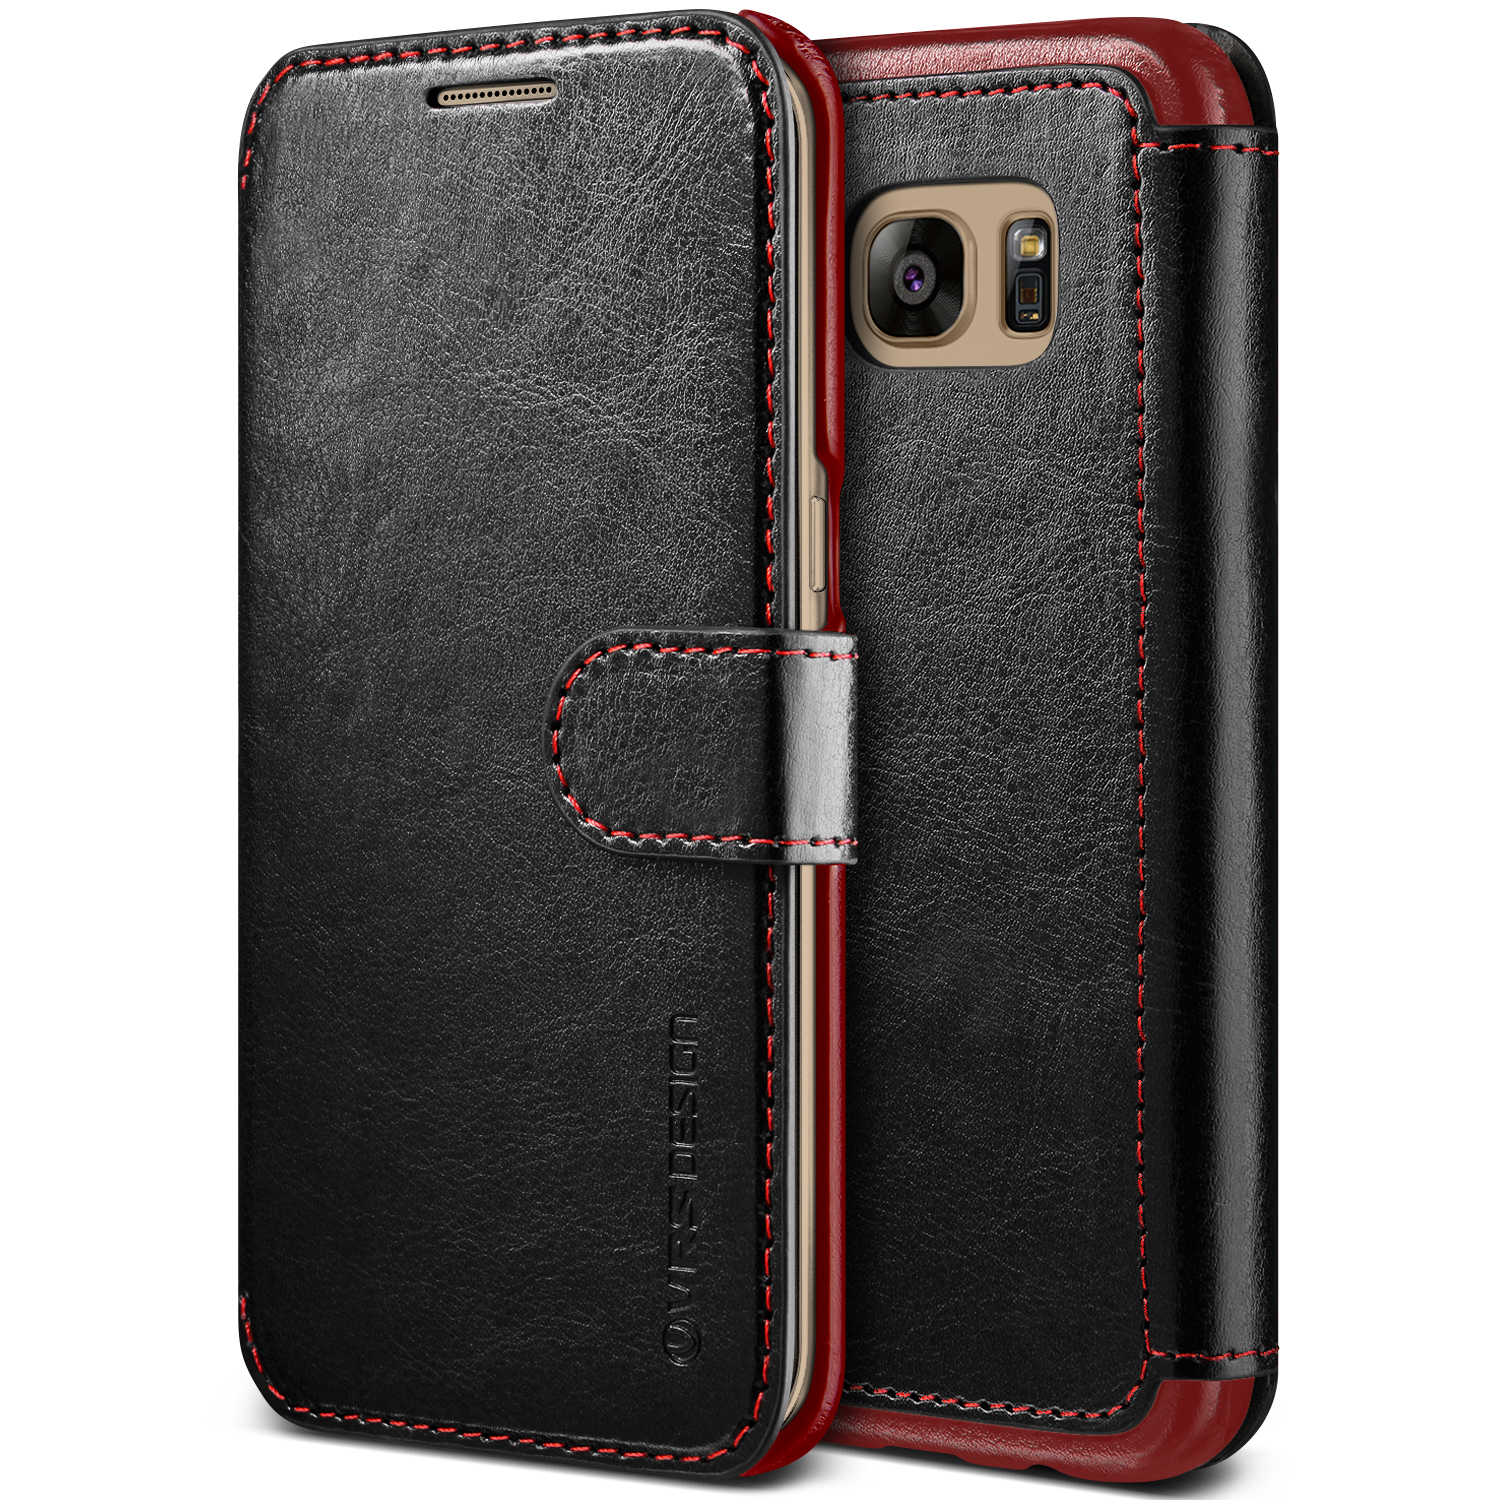 Samsung Galaxy S7 Edge Case Cover   Premium PU Leather Wallet with Card Slots   VRS Design Layered Dandy for Samsung Galaxy S7 Edge